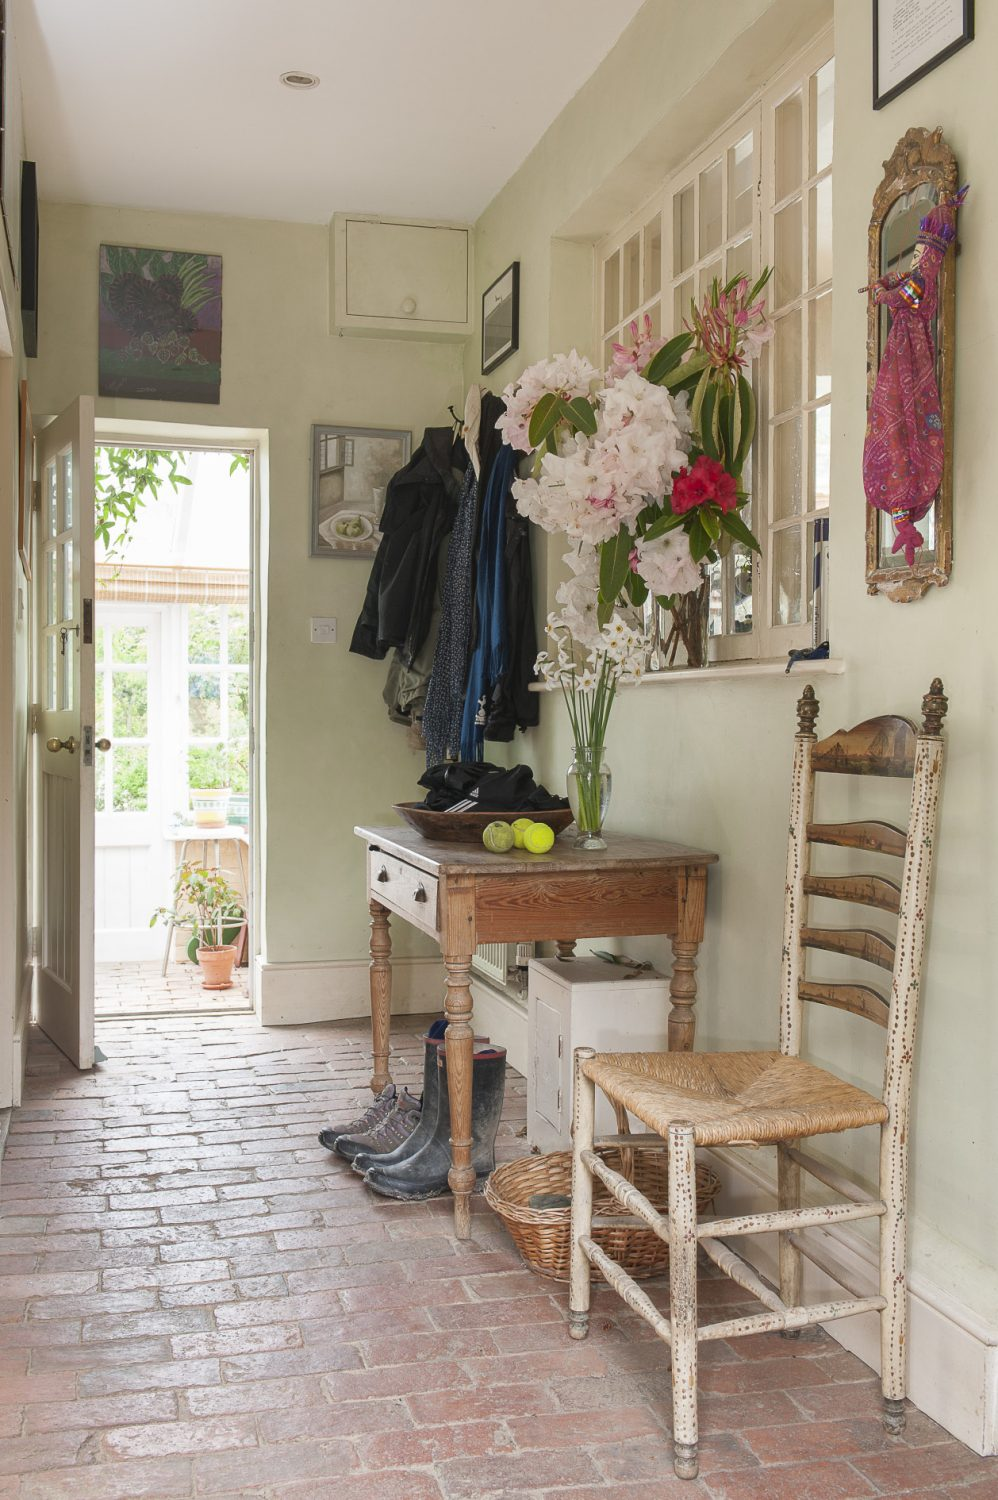 The hallway leads straight through into an airy conservatory